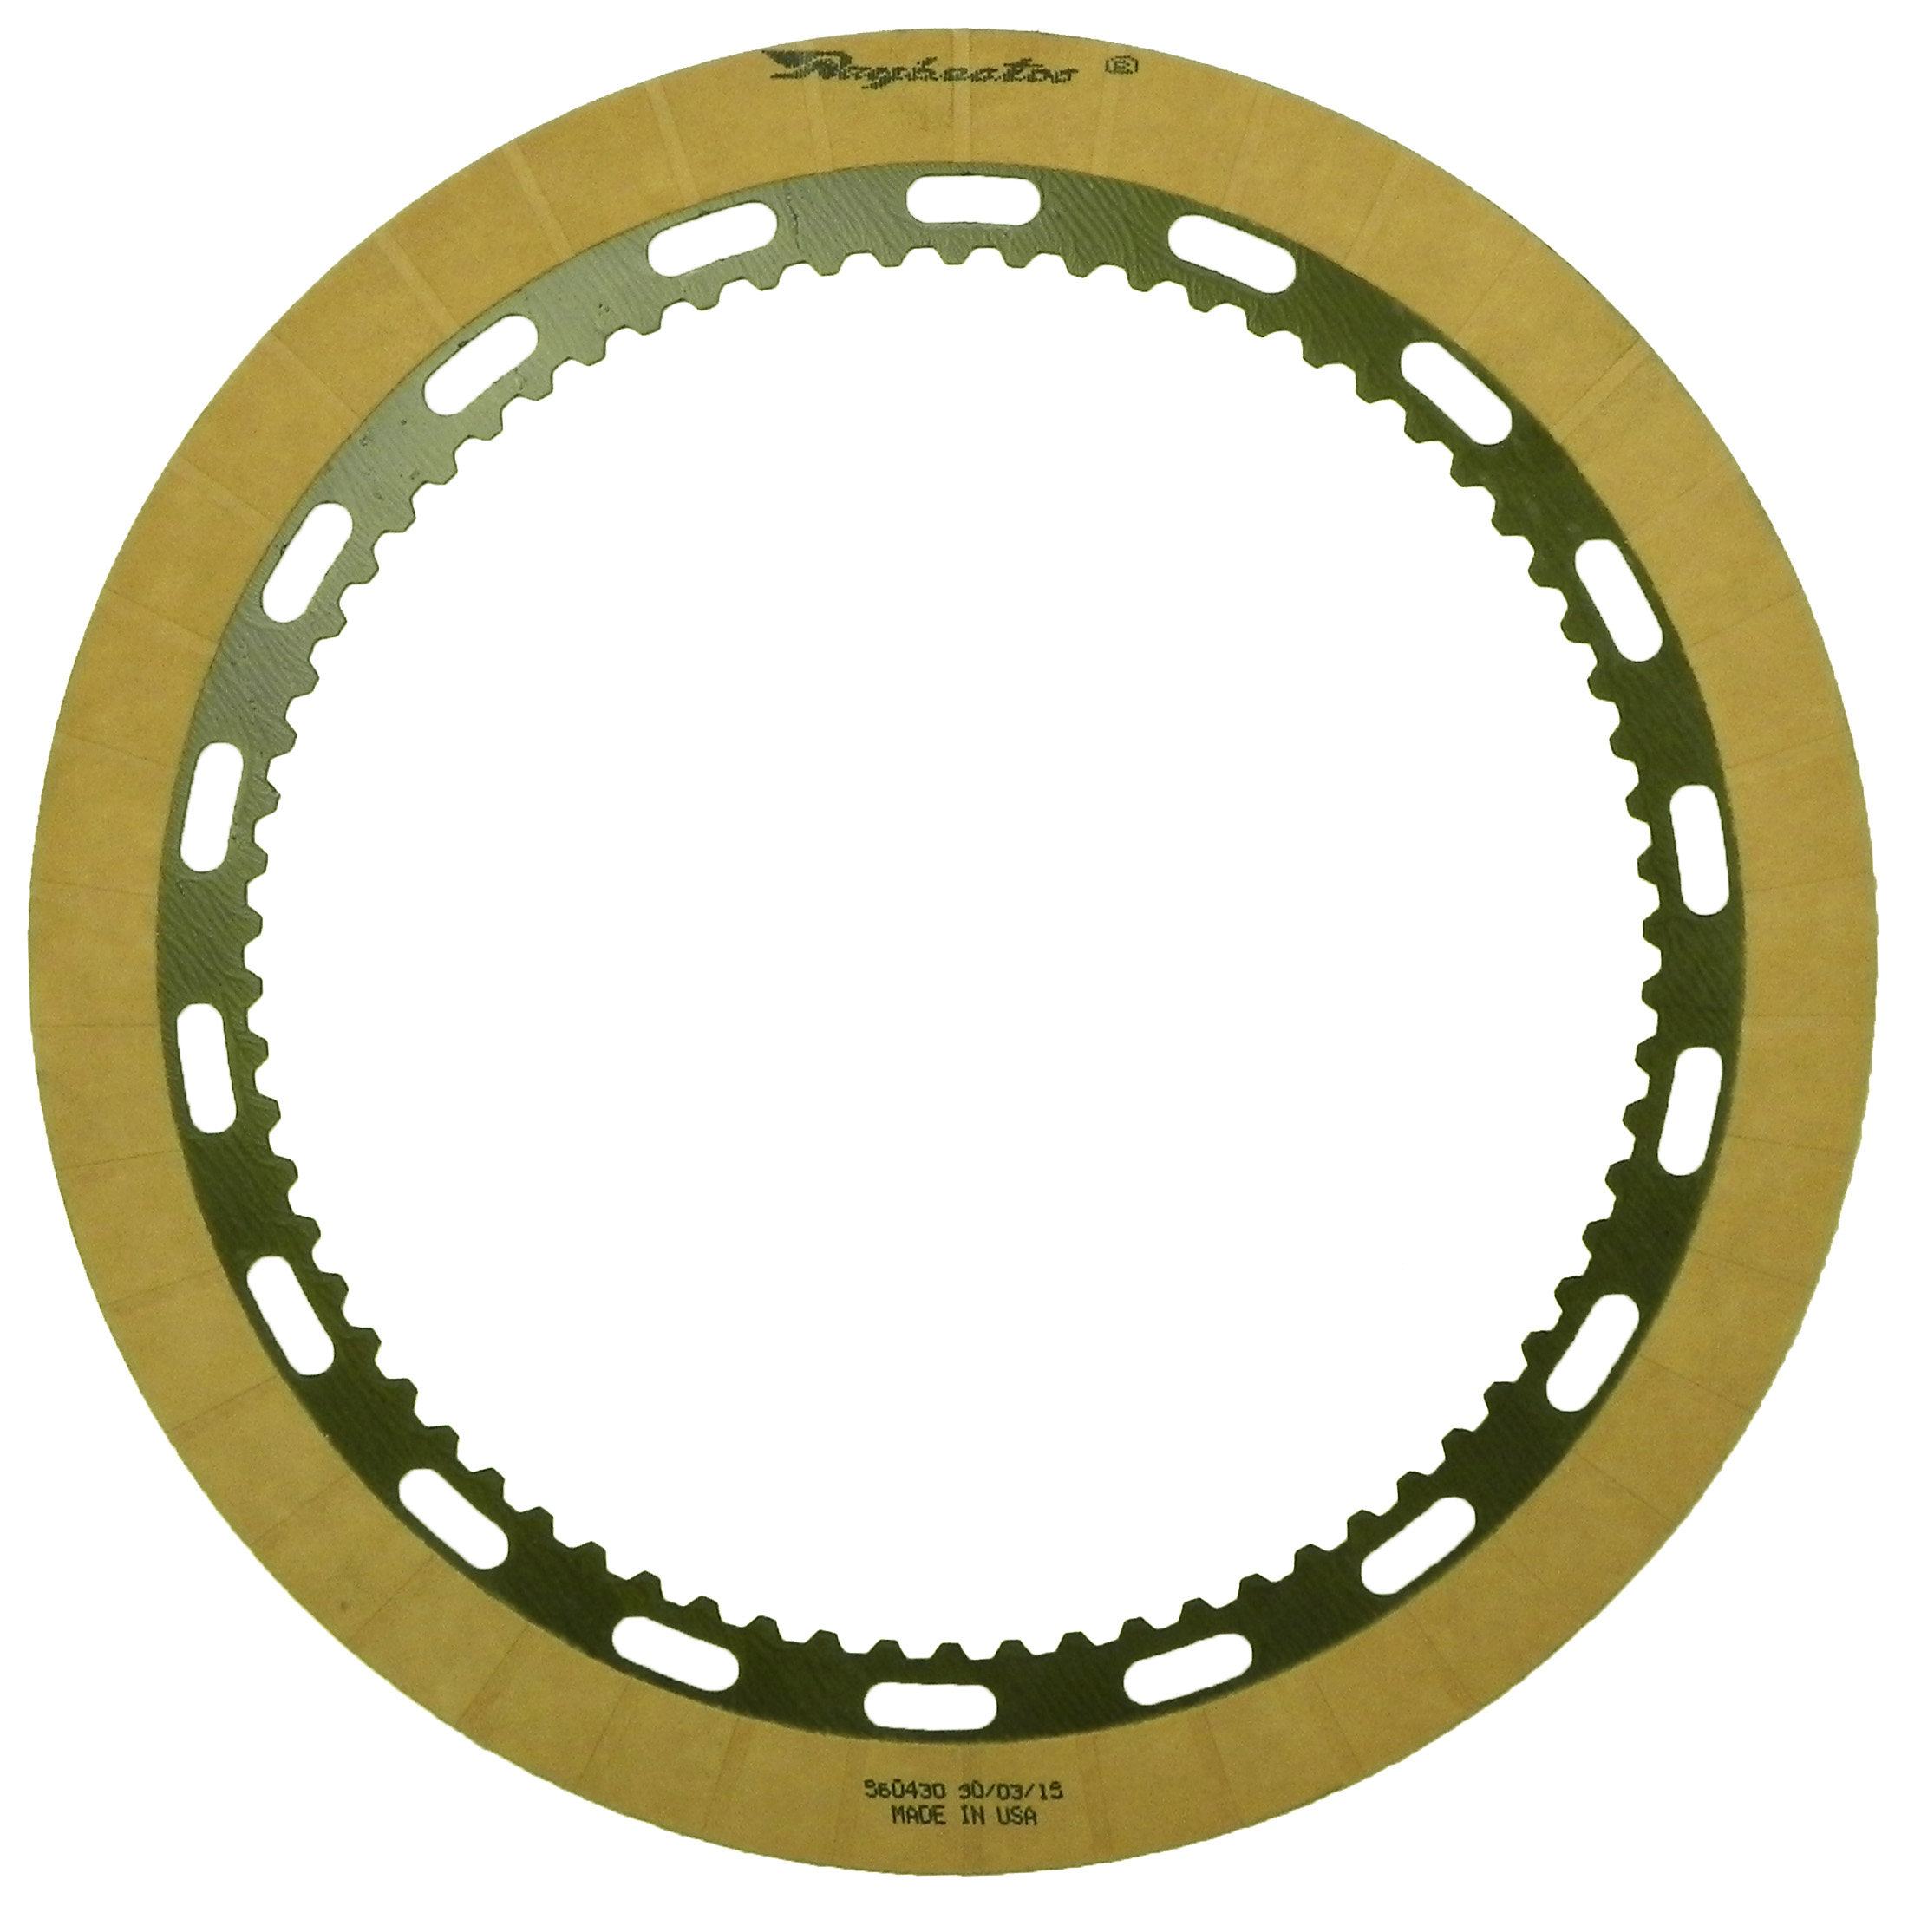 R560430 | 2007-ON Friction Clutch Plate OE Replacement B2 Low, Reverse Clutch